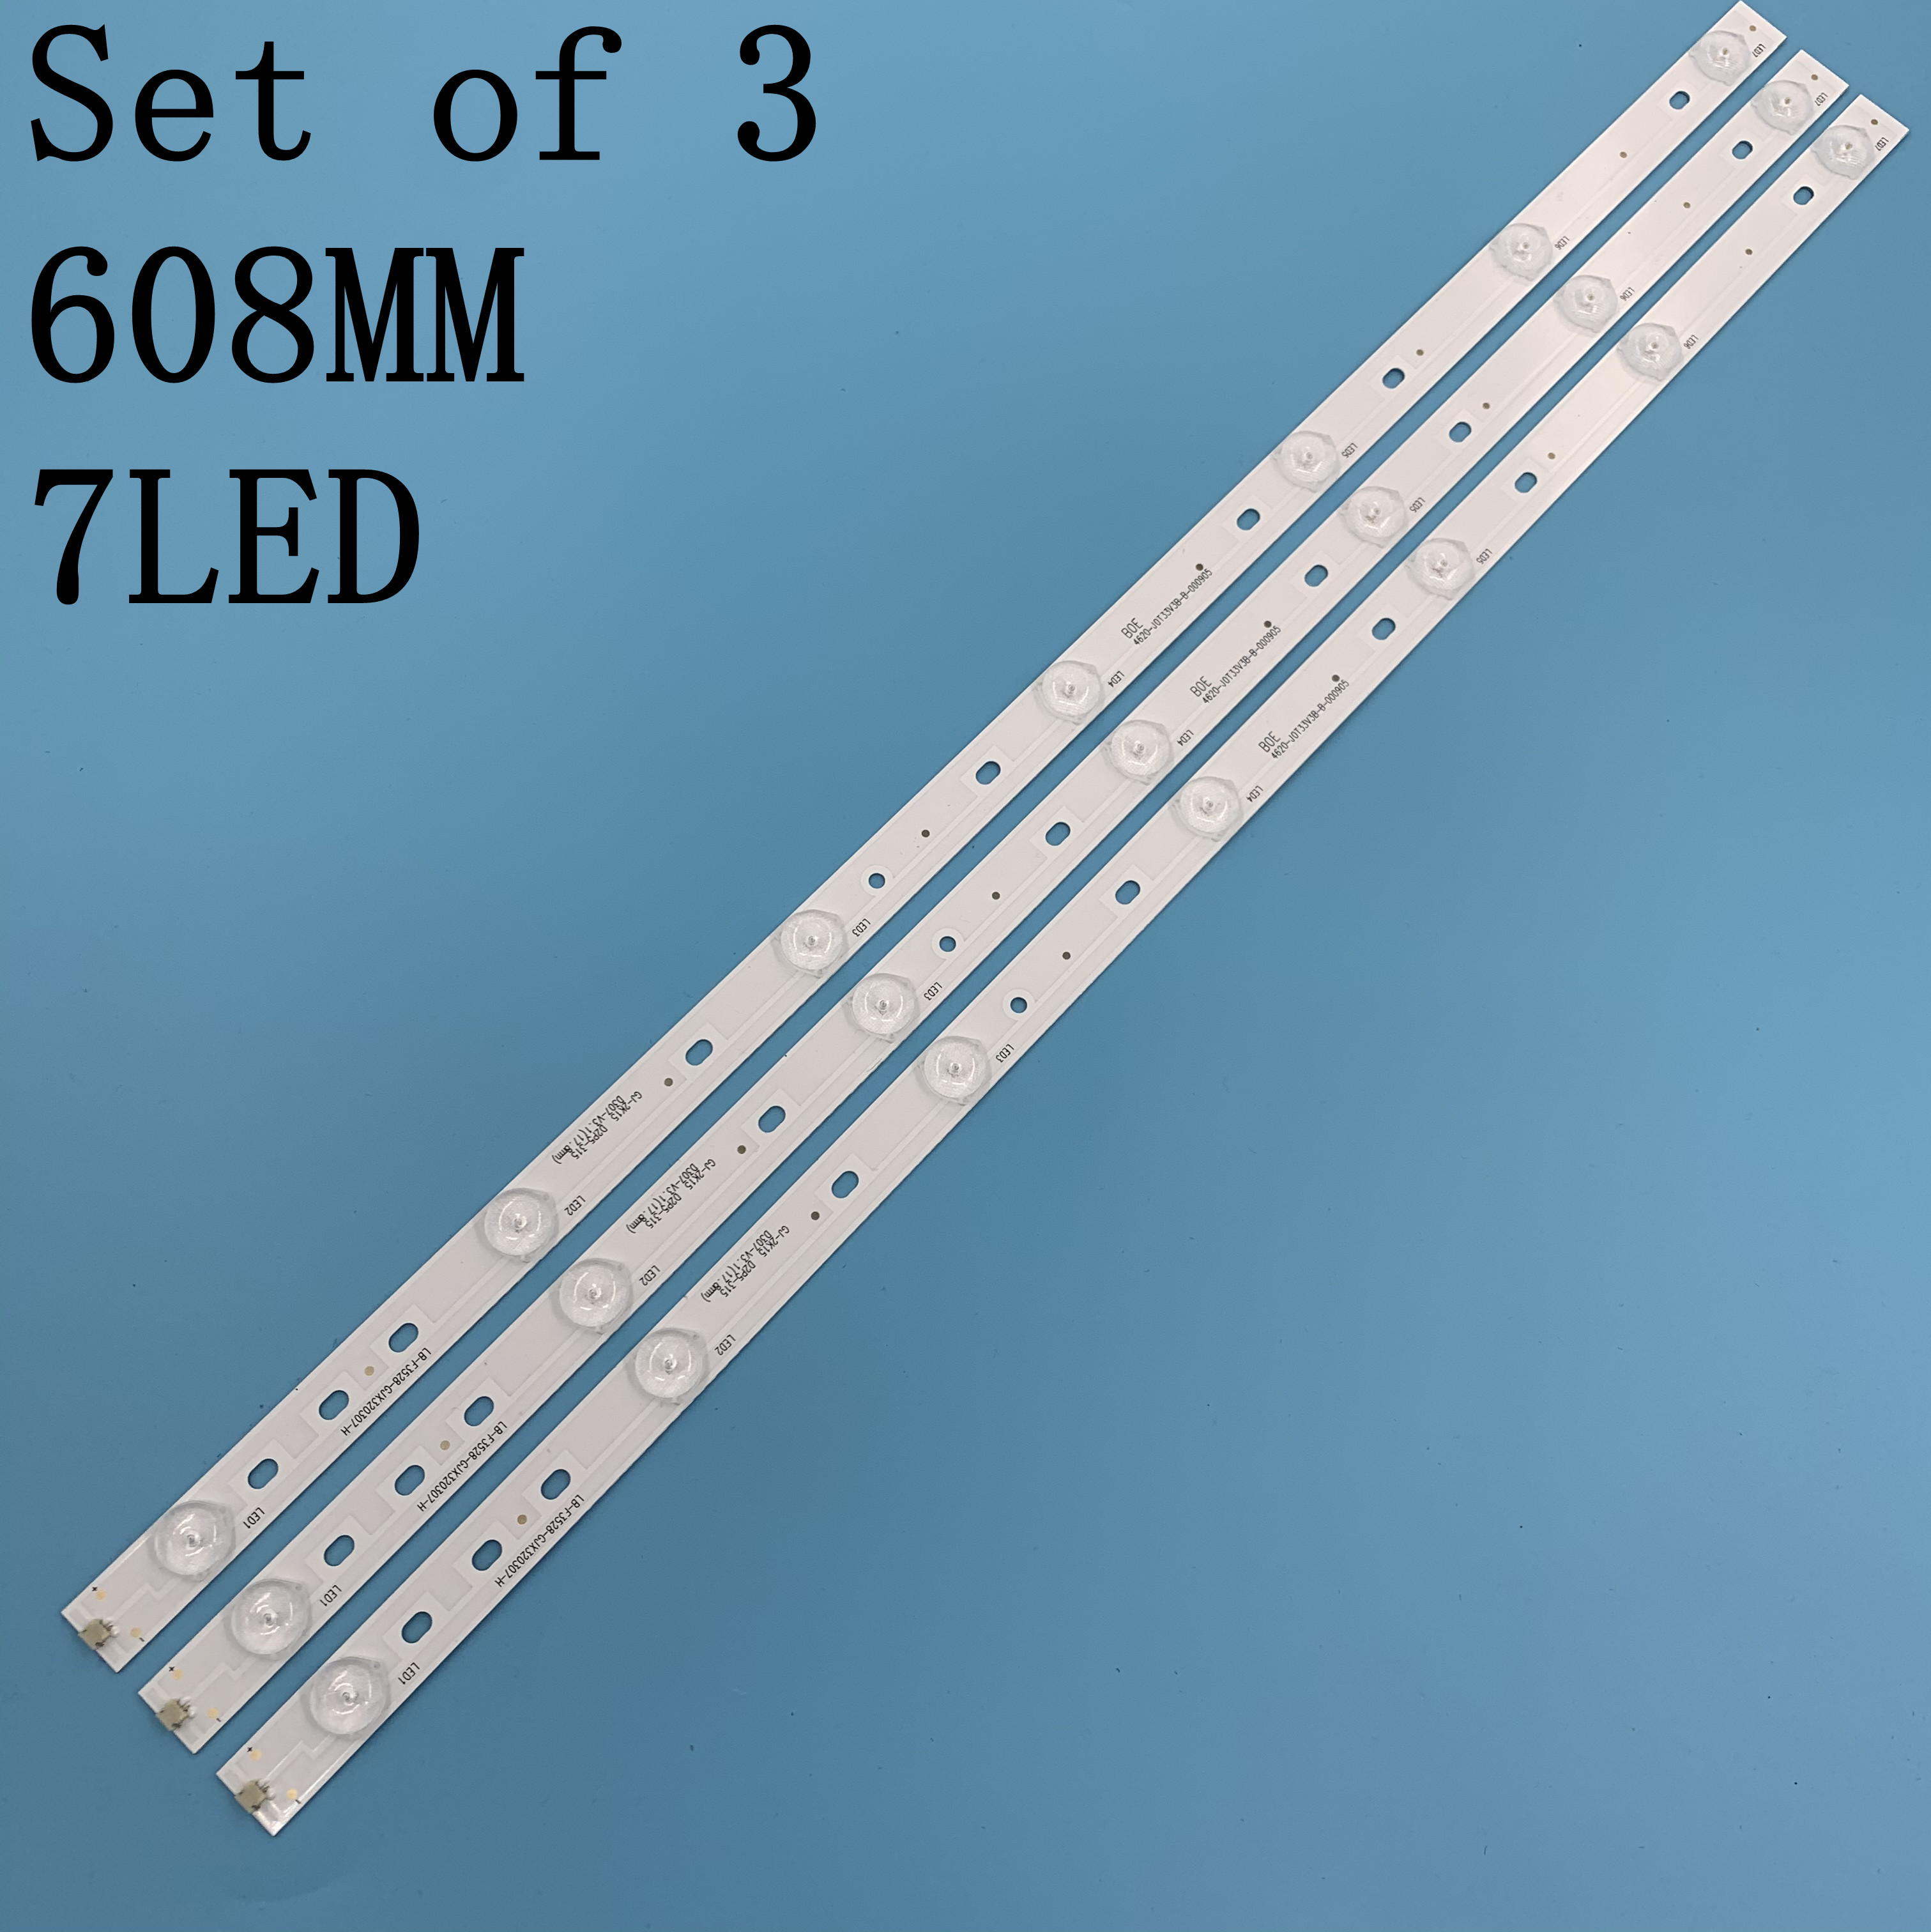 Led Bar Lights 1set=3pcs LBM320P0701-FC-2 LED Backlight Strips For P Hilips BDM3201F